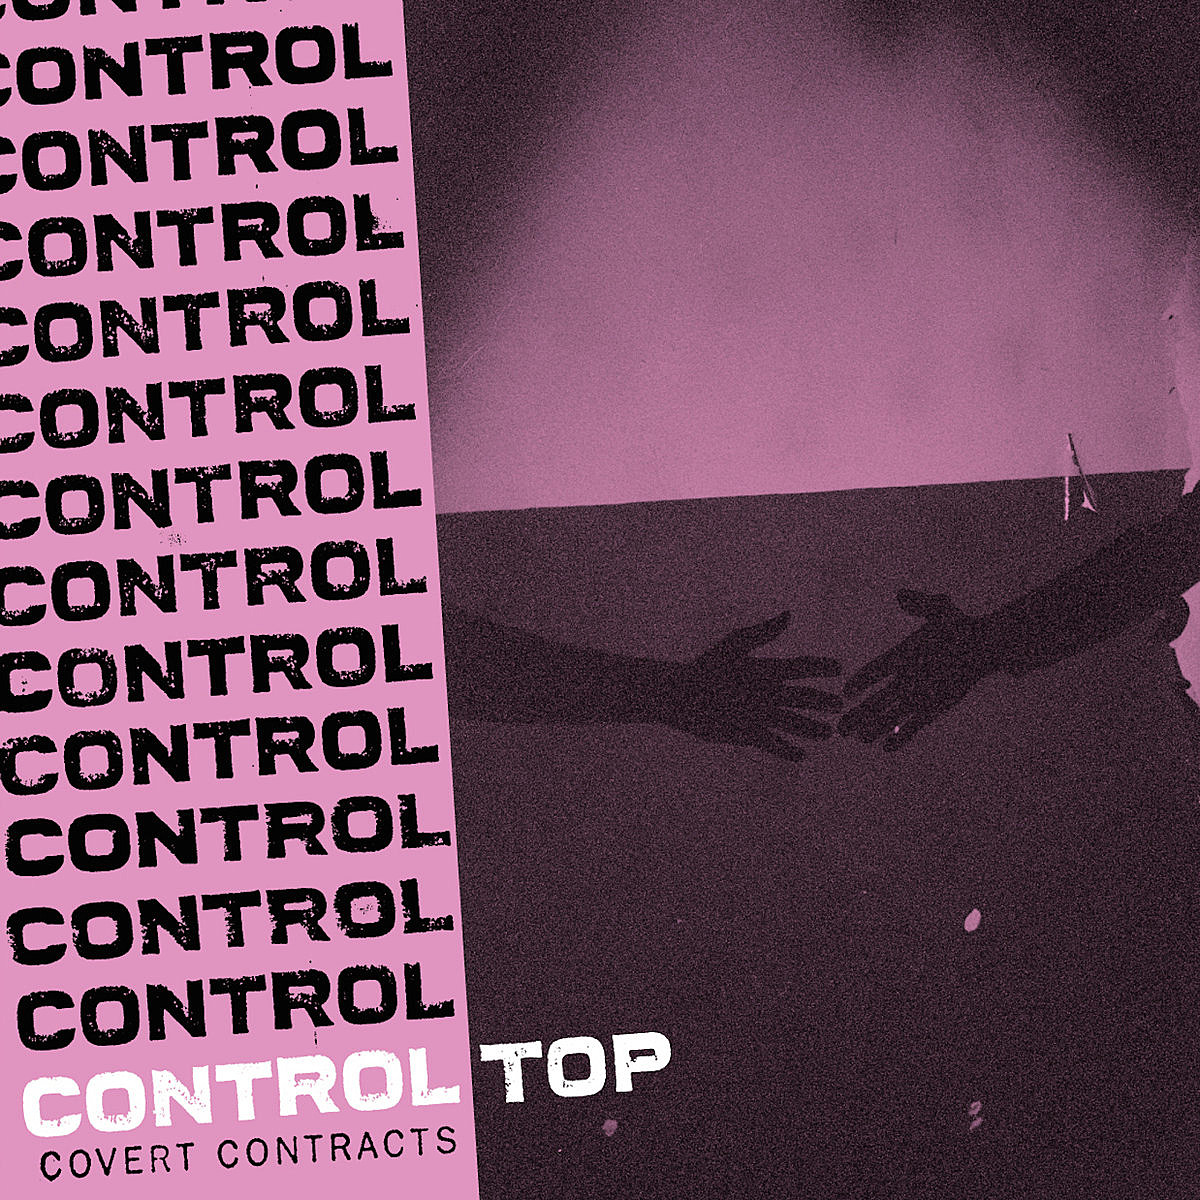 stream Control Top's title track from new album 'Covert